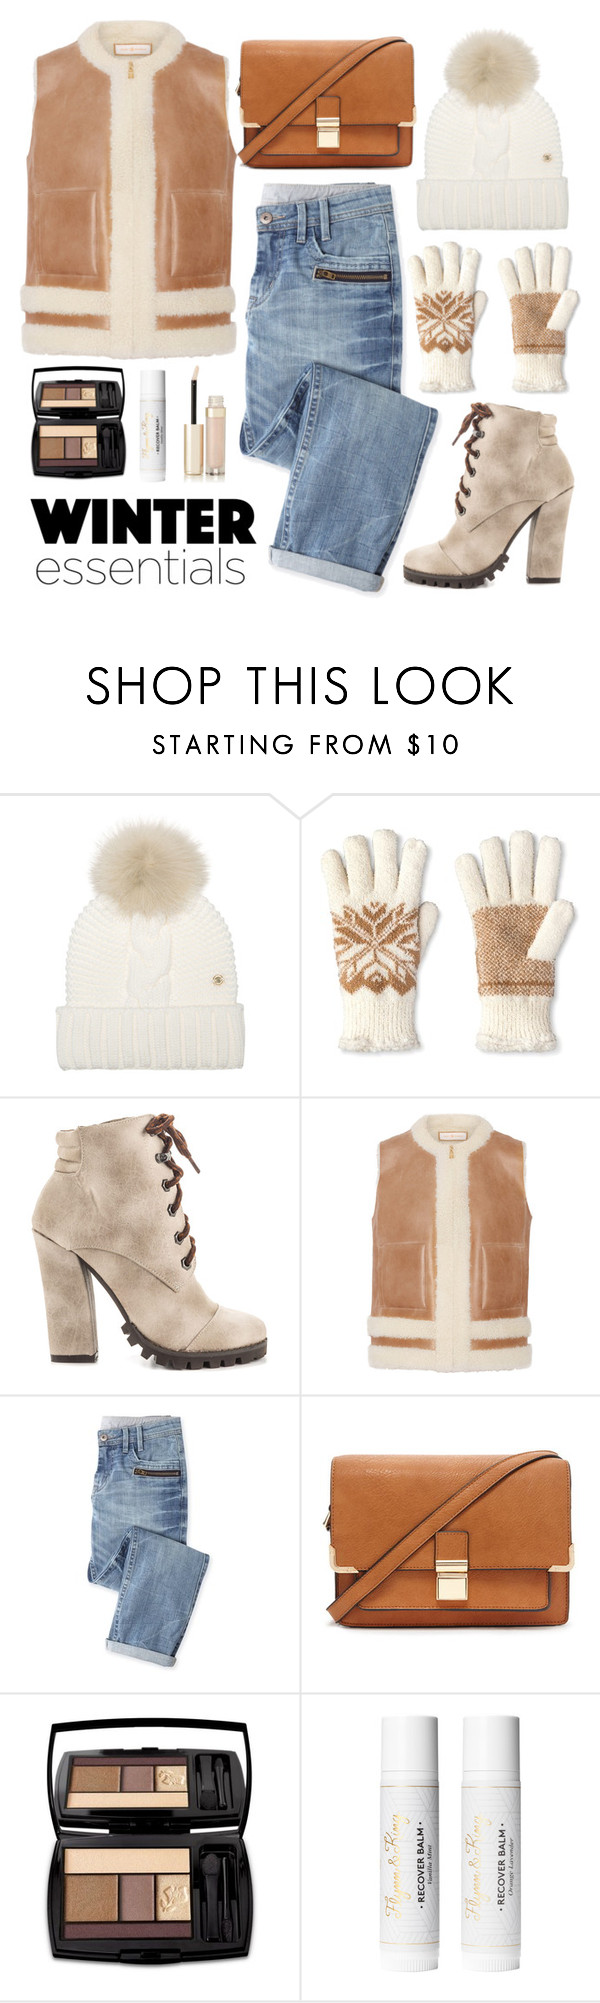 """""""Winter Essentials"""" by celida-loves-pink ❤ liked on Polyvore featuring Woolrich, Isotoner, Michael Antonio, Tory Burch, Wrap, Forever 21, By Terry, Minimalist, WhatToWear and winteressentials"""